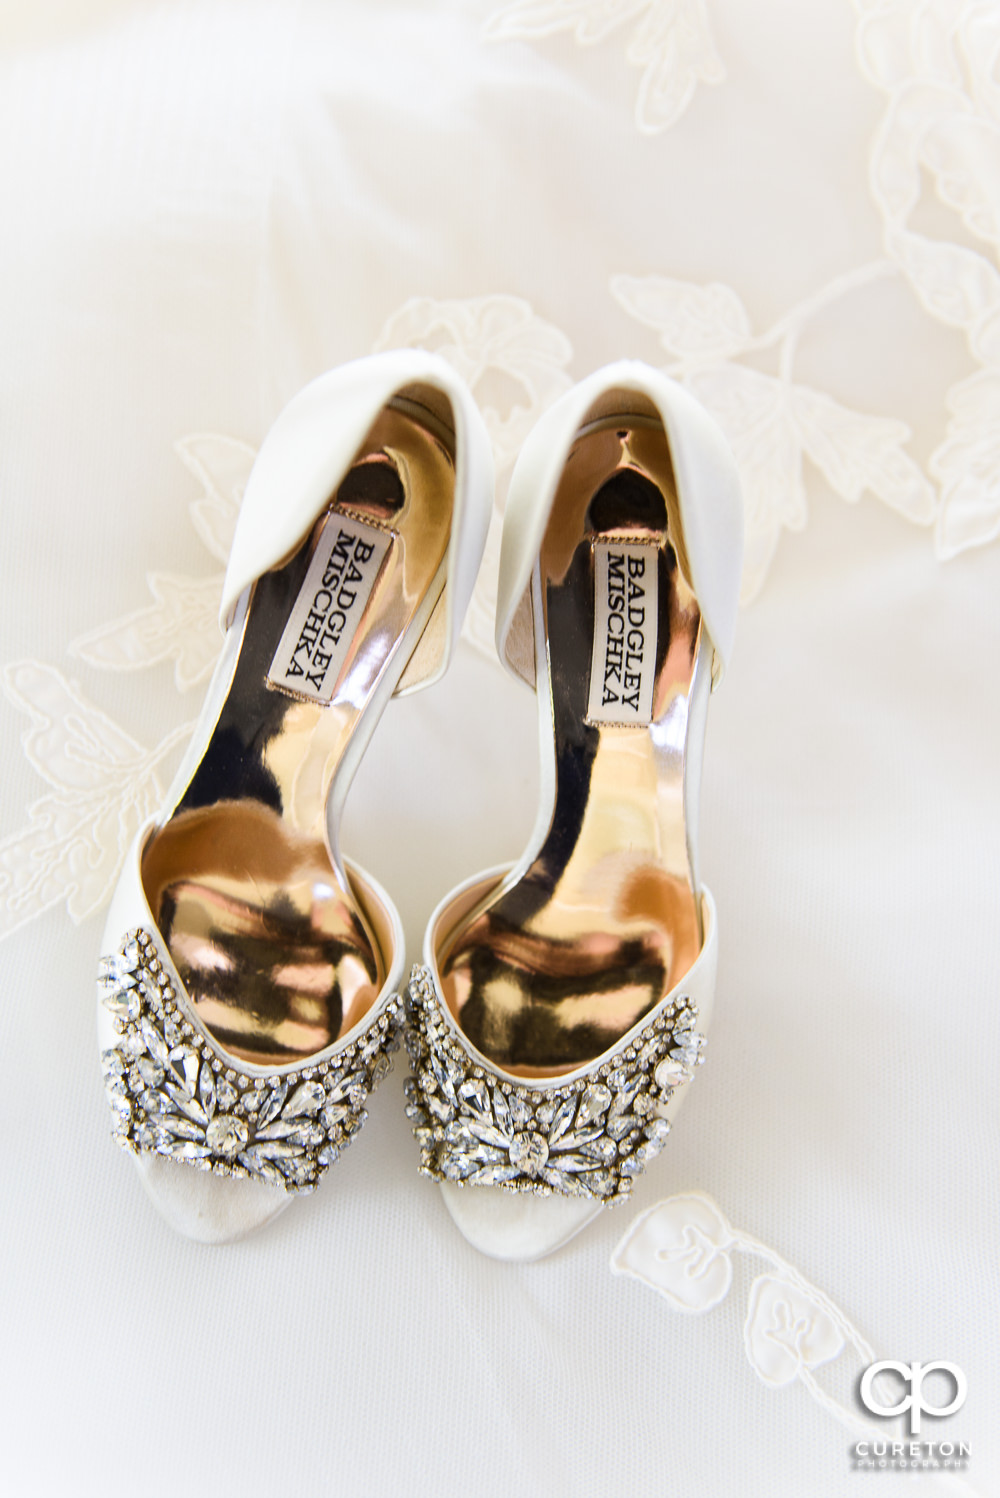 Badgley Mischka bridal shoes.